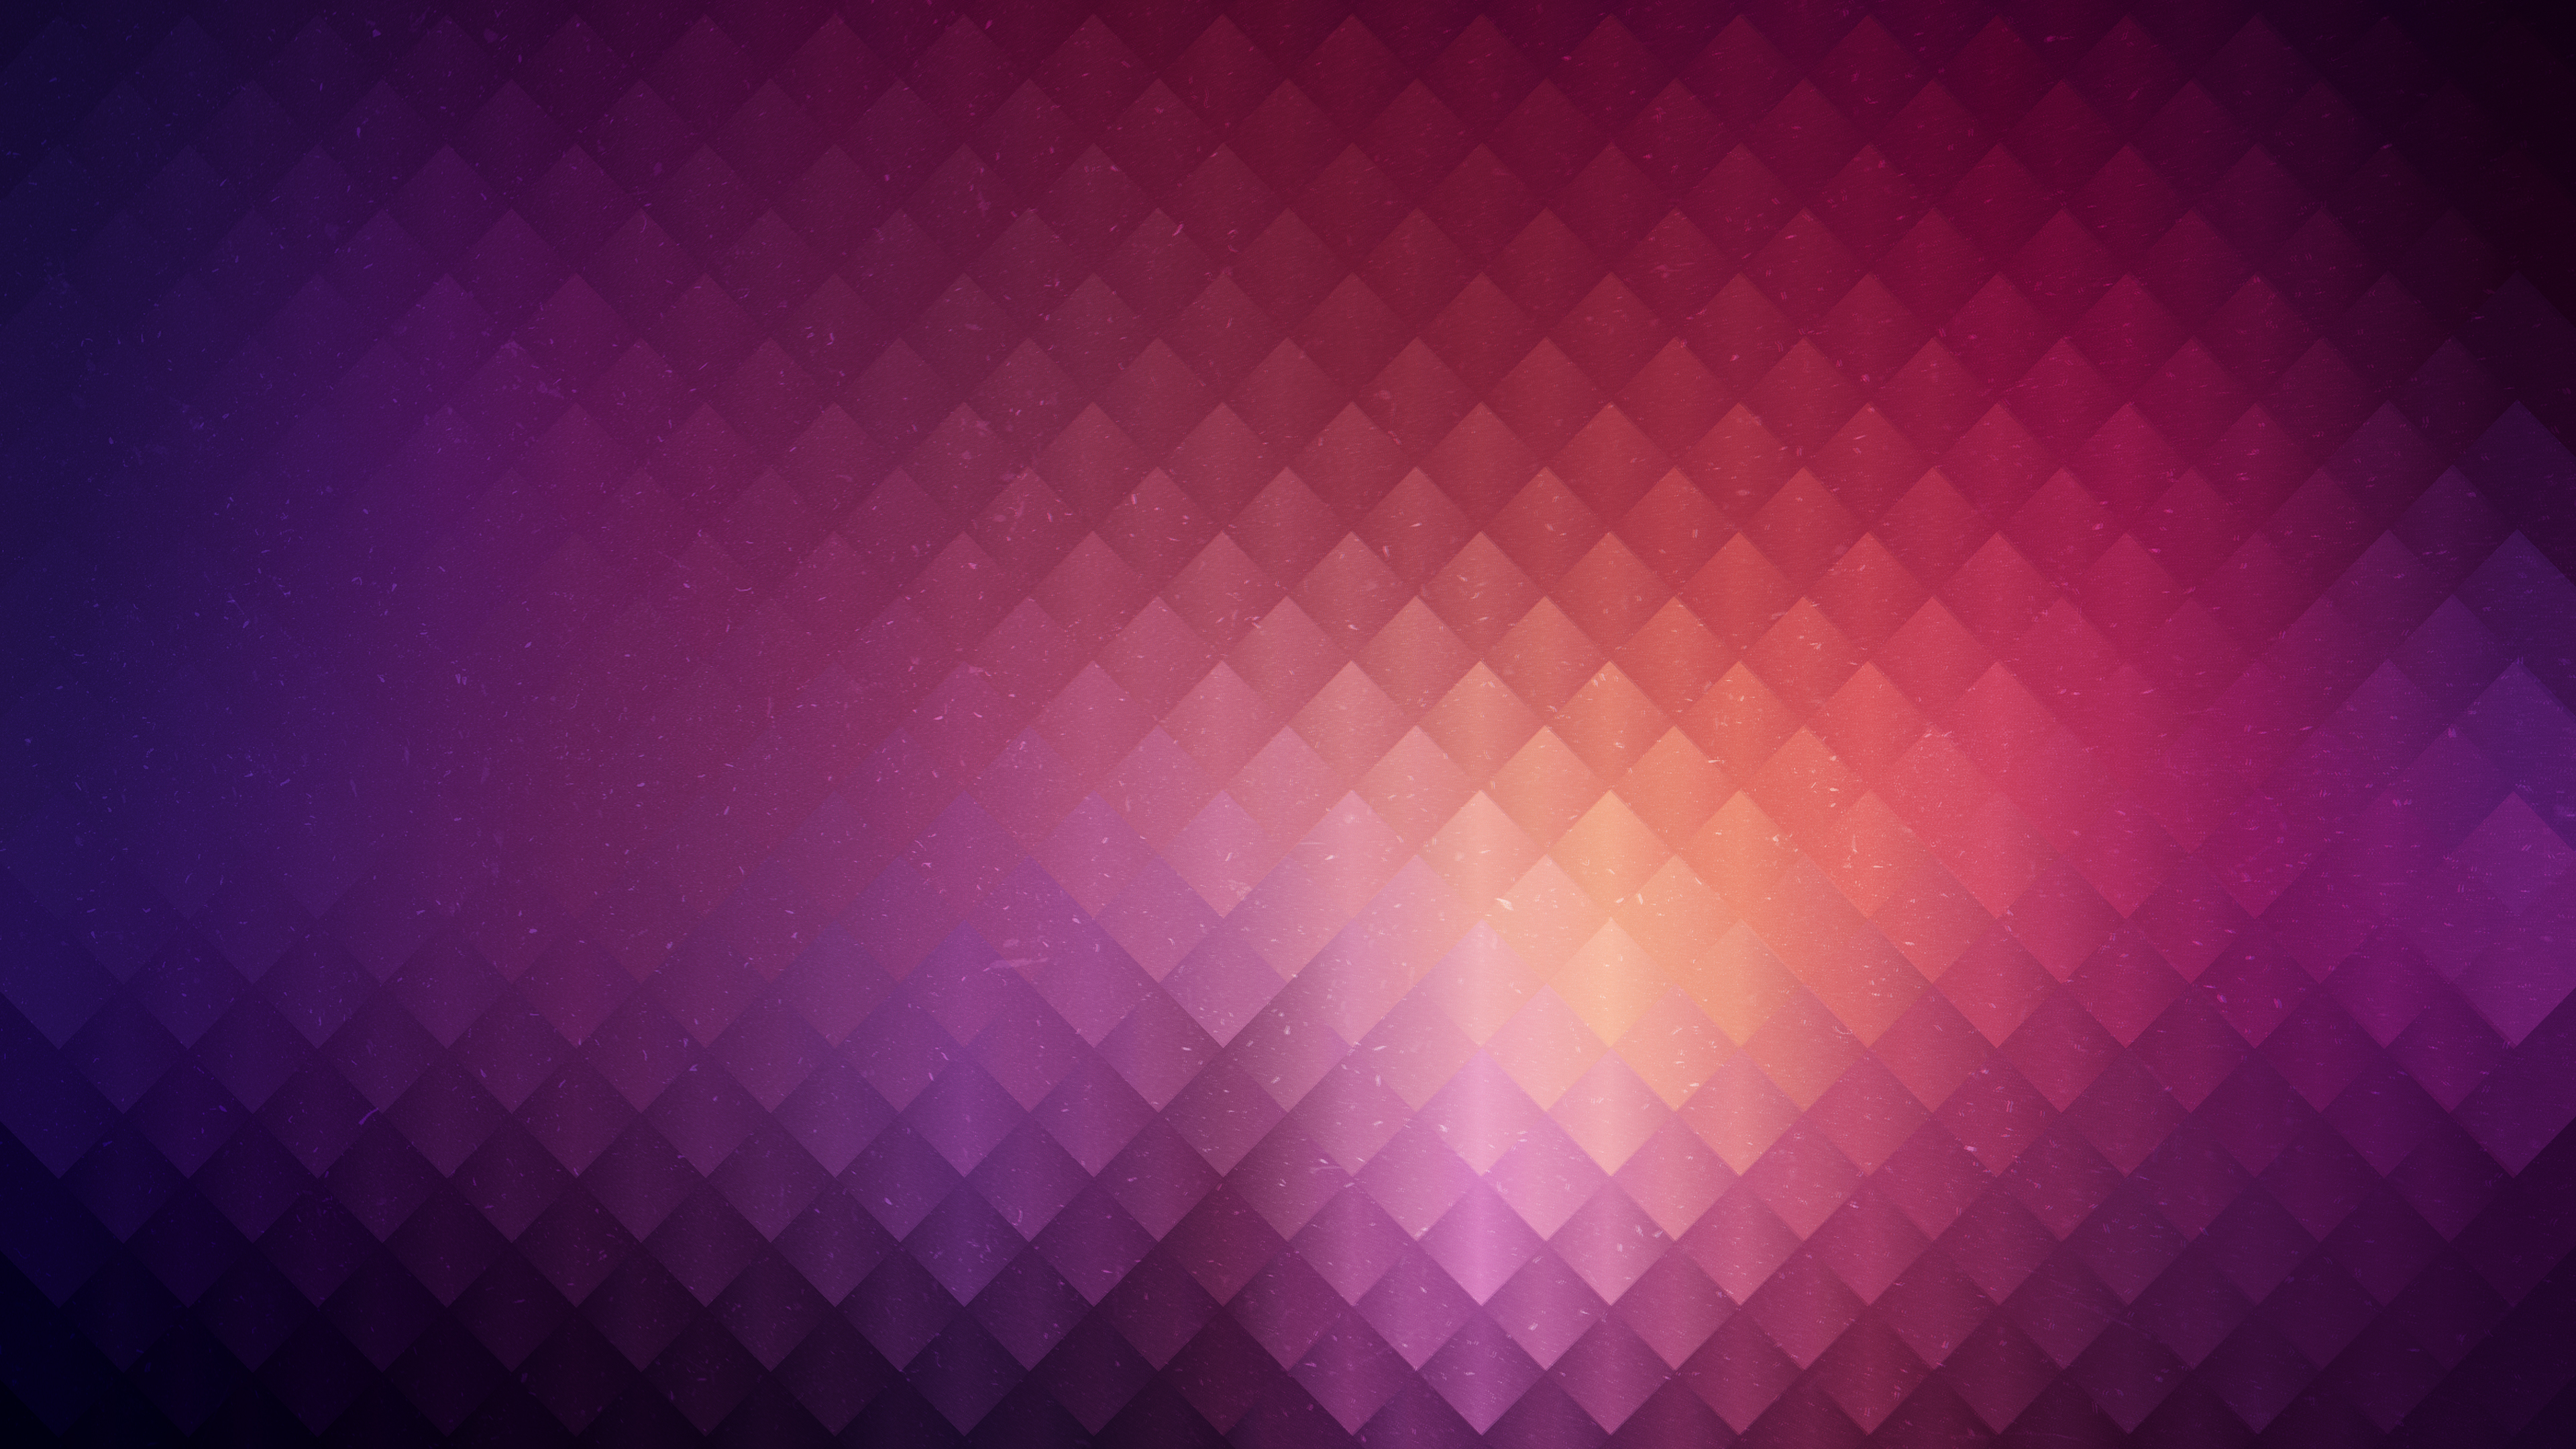 4k Purple Supremo Wallpaper Hd